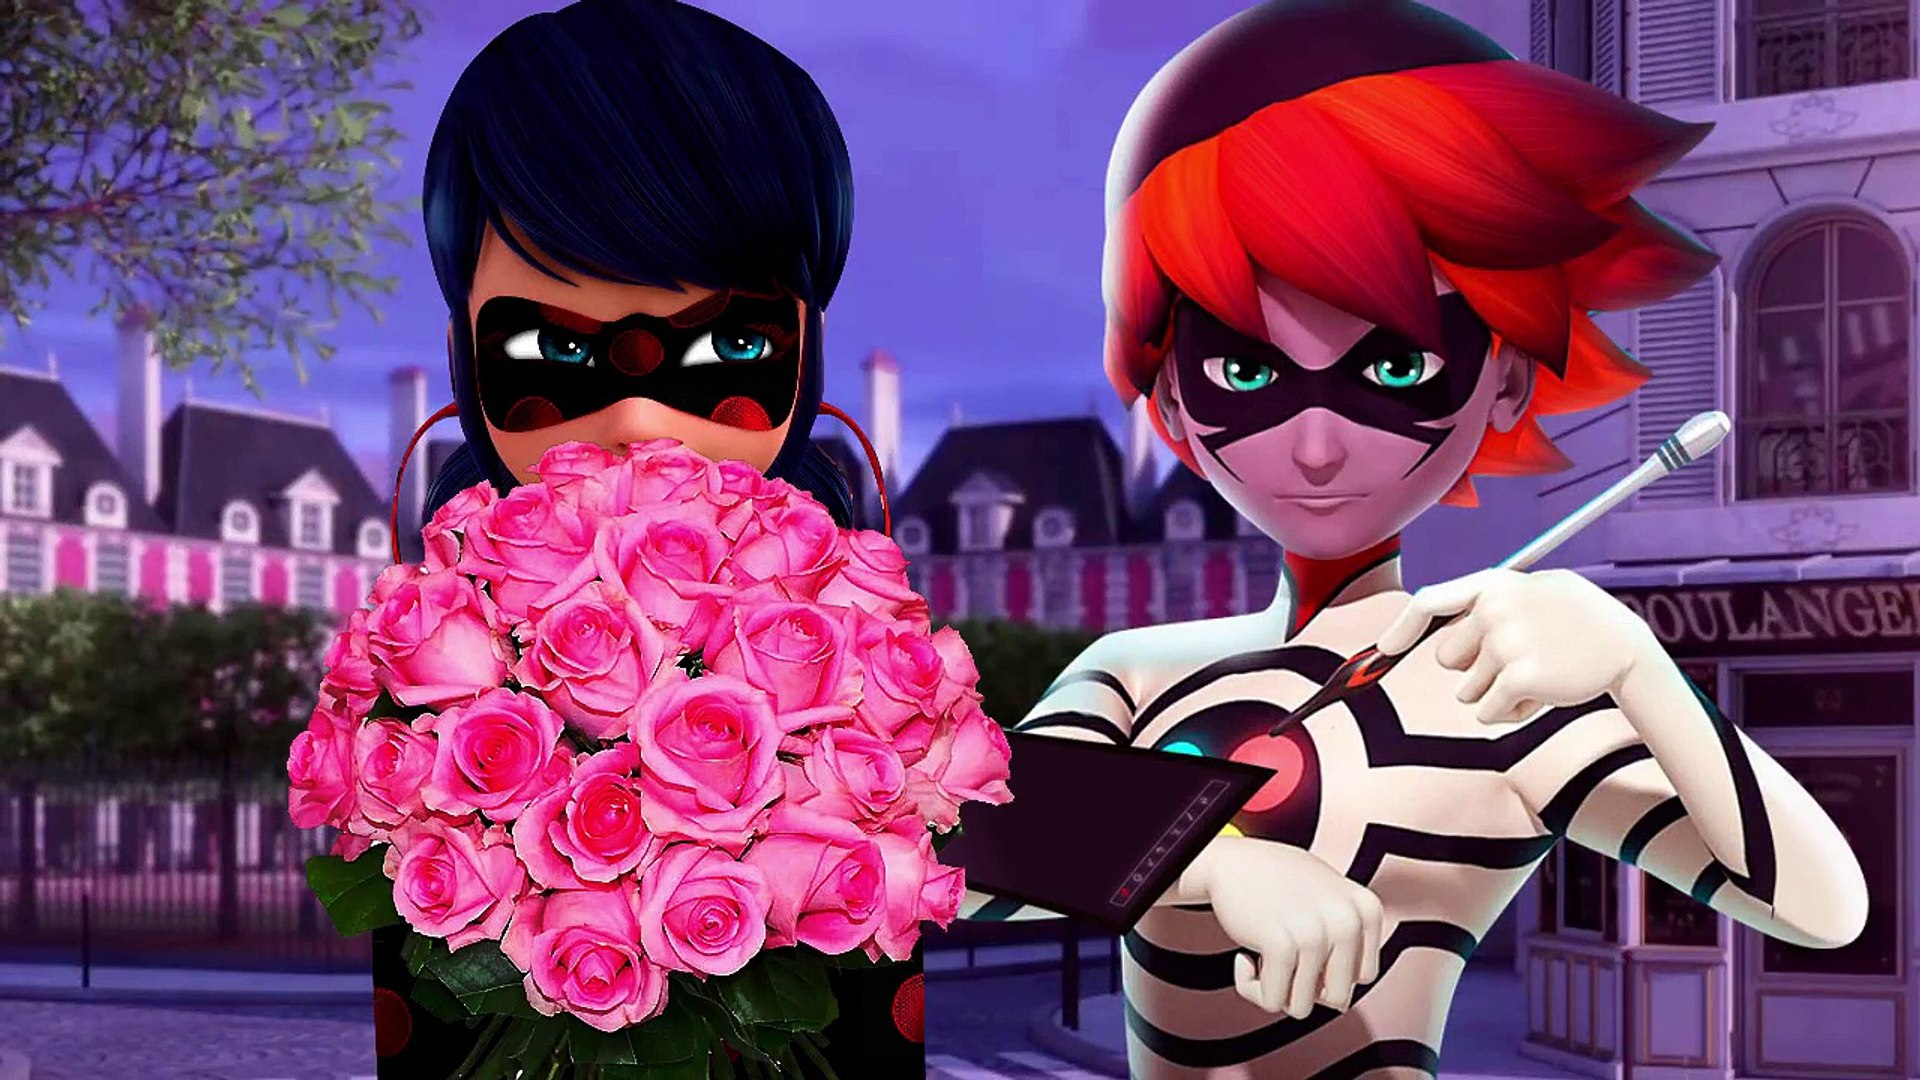 Miraculous Ladybug Miss Fortune kissing | Cat is jealous | New Episode 2017